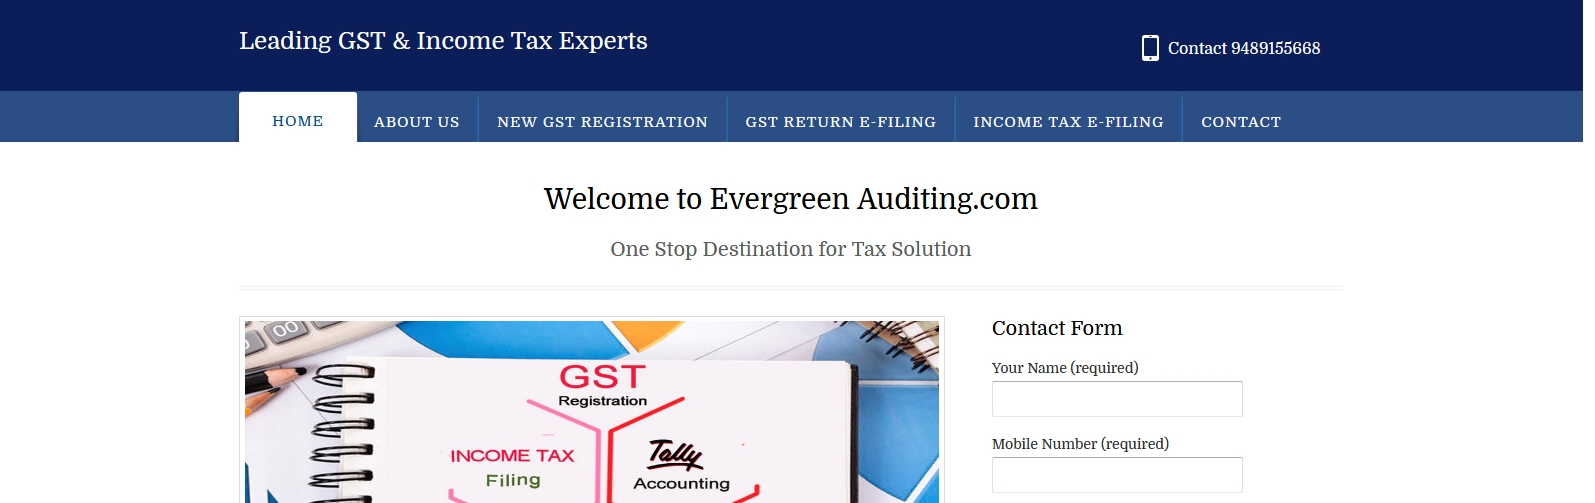 evergreen-auditing-homepage